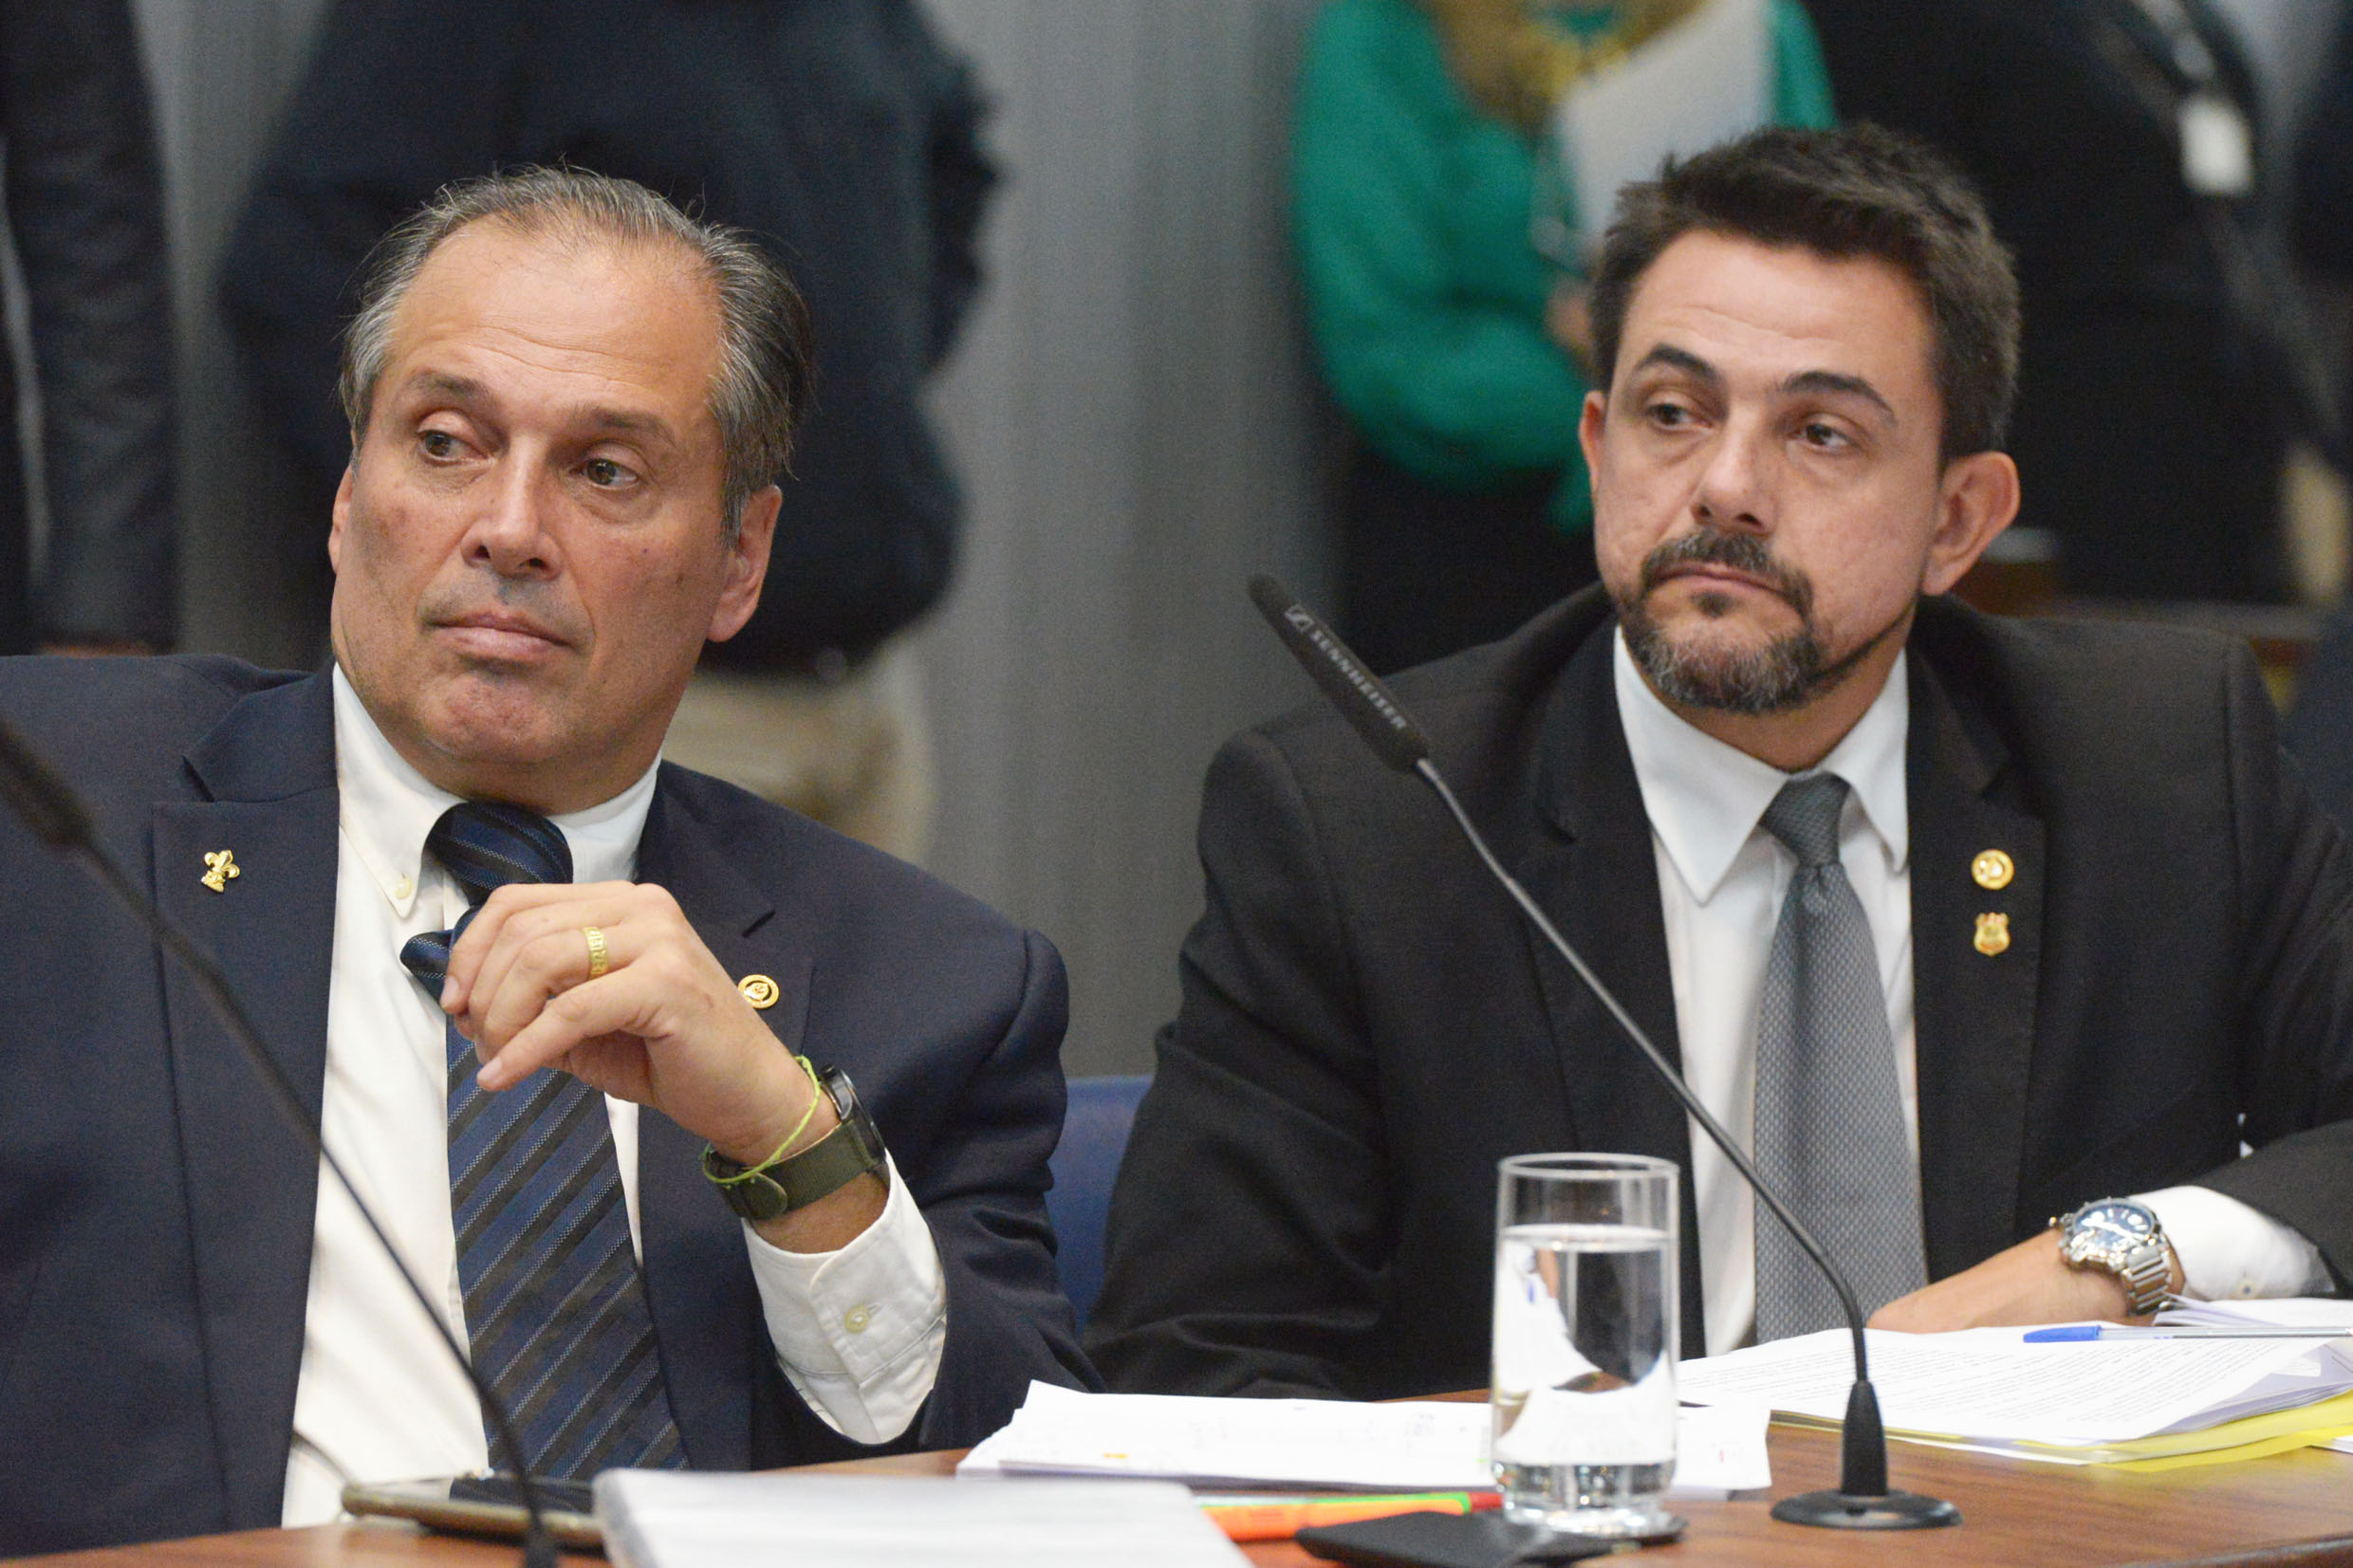 Castello Branco e Agente Federal Danilo Balas<a style='float:right' href='https://www3.al.sp.gov.br/repositorio/noticia/N-06-2019/fg236336.jpg' target=_blank><img src='/_img/material-file-download-white.png' width='14px' alt='Clique para baixar a imagem'></a>